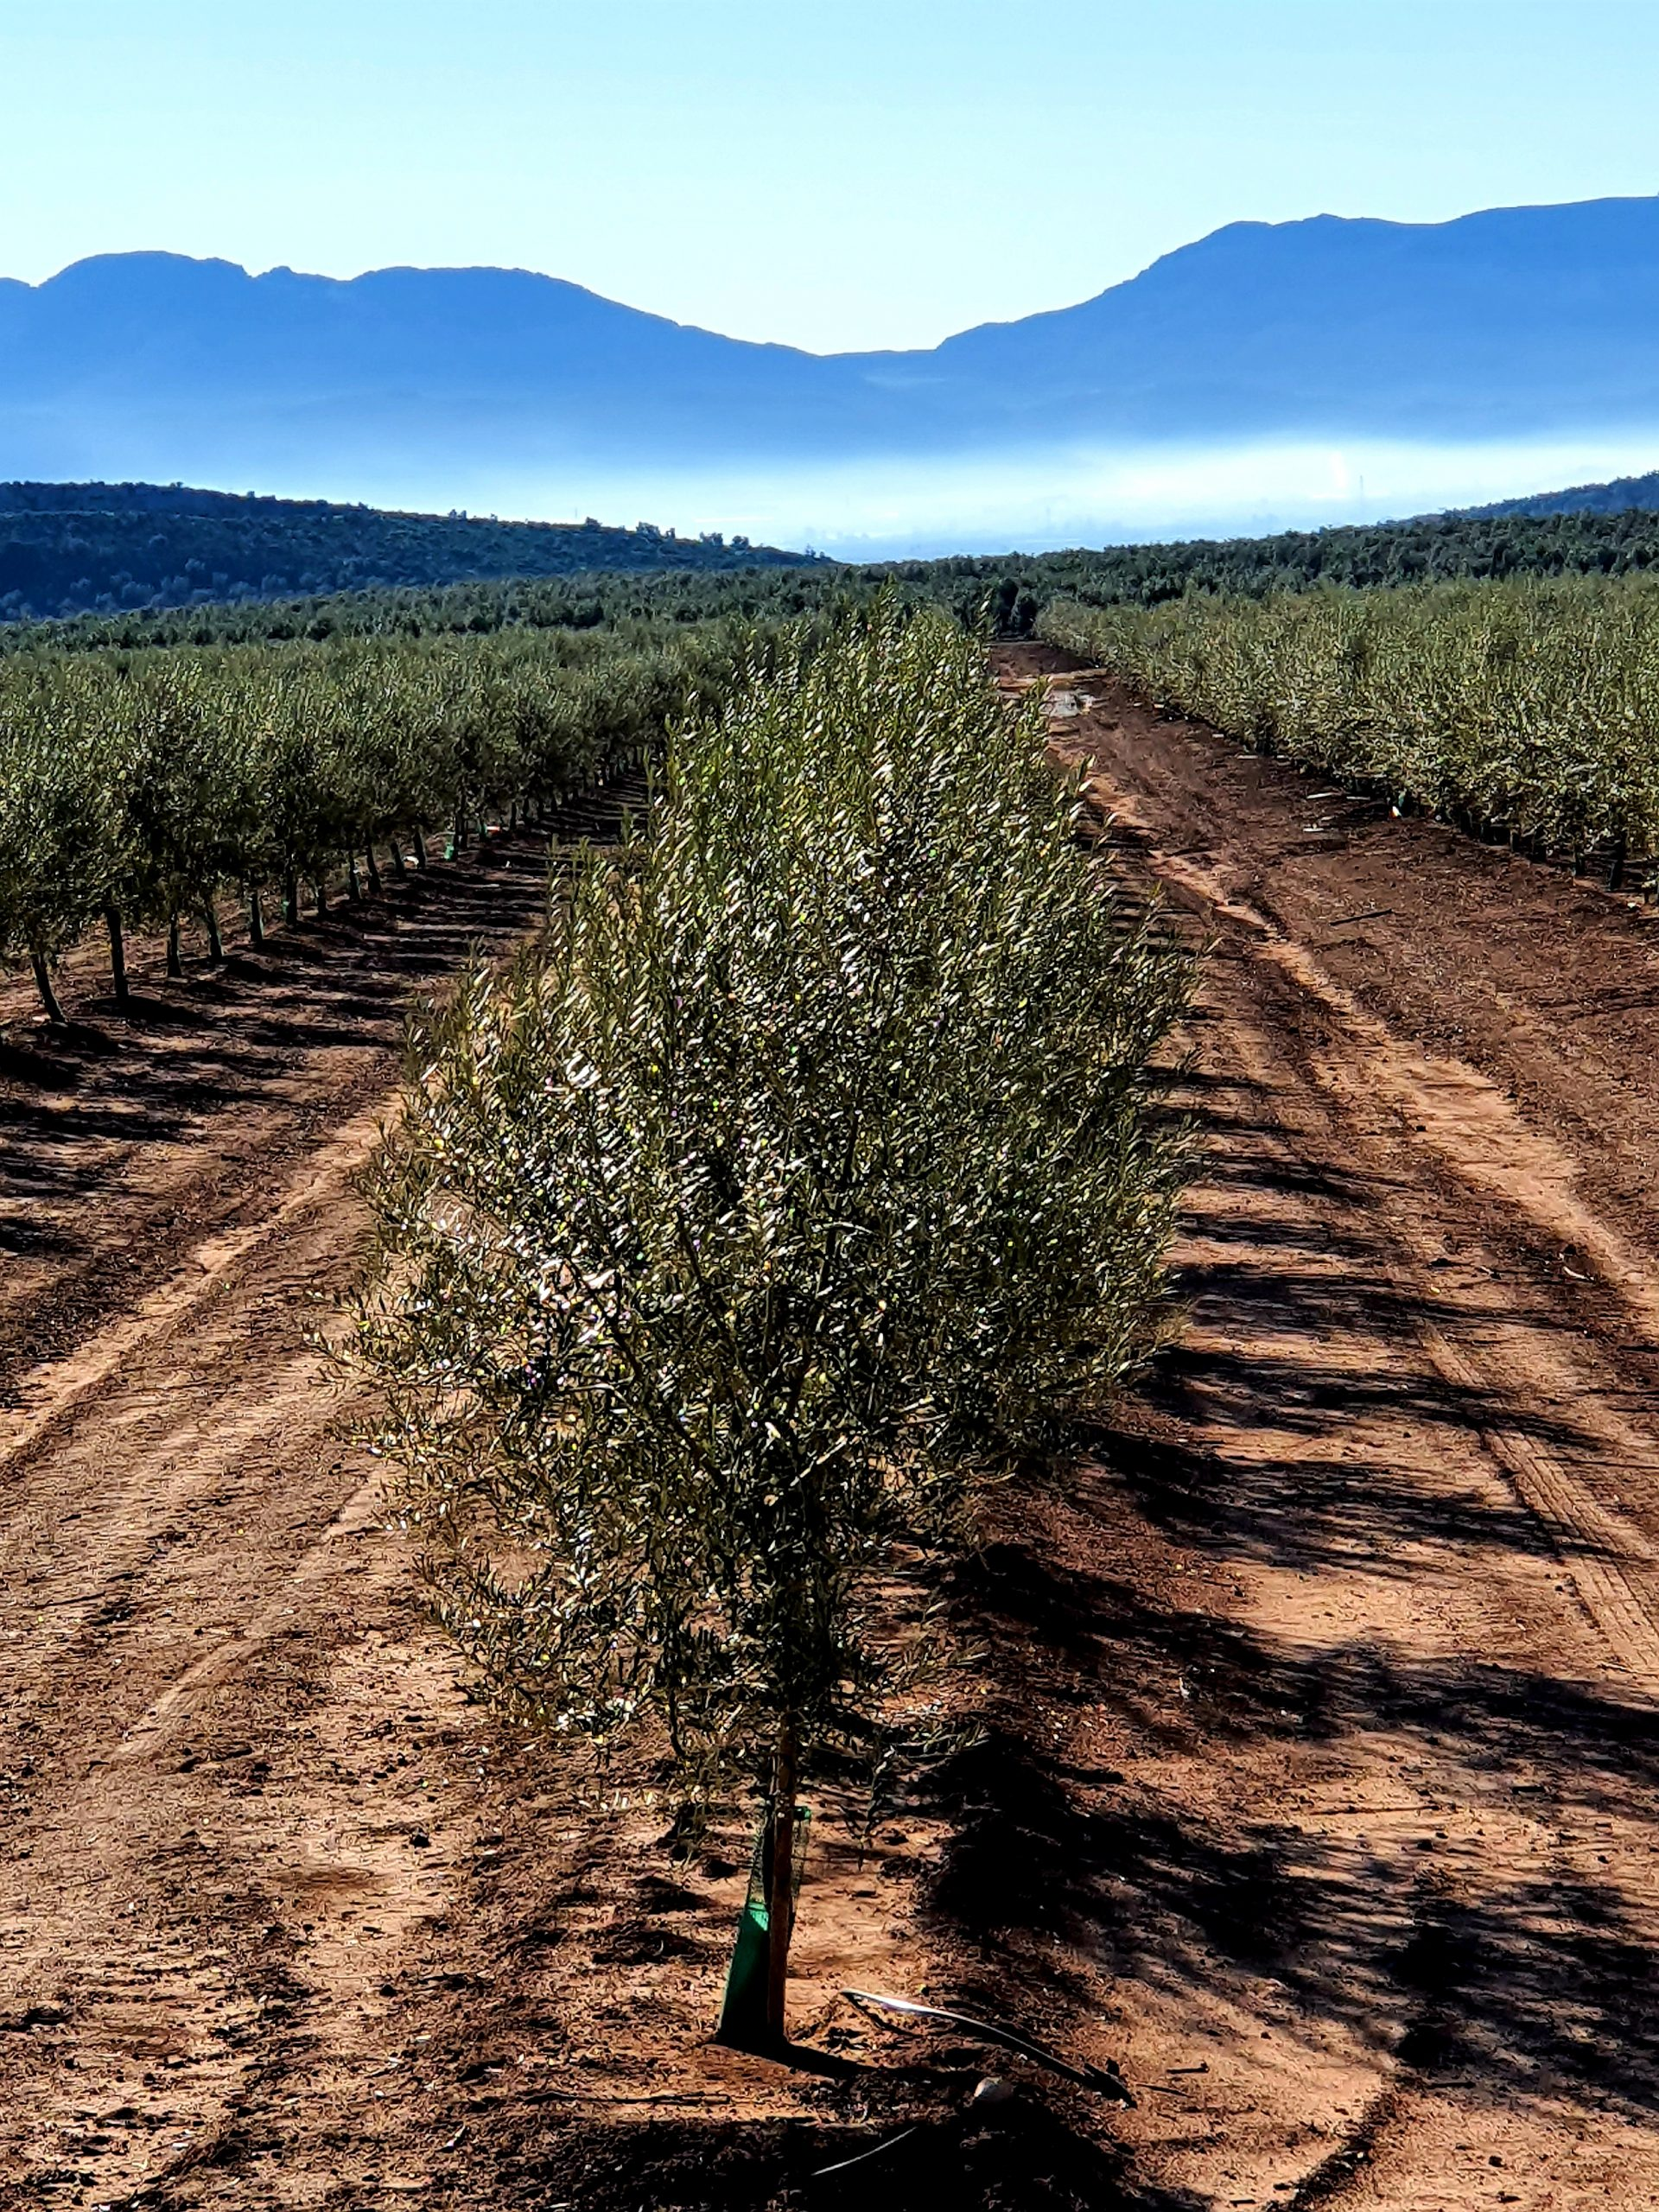 Whilst driving through the olive groves on a crisp Andalucian morning, near to Antequera, I stopped the car, rolled down the window and took the pic.